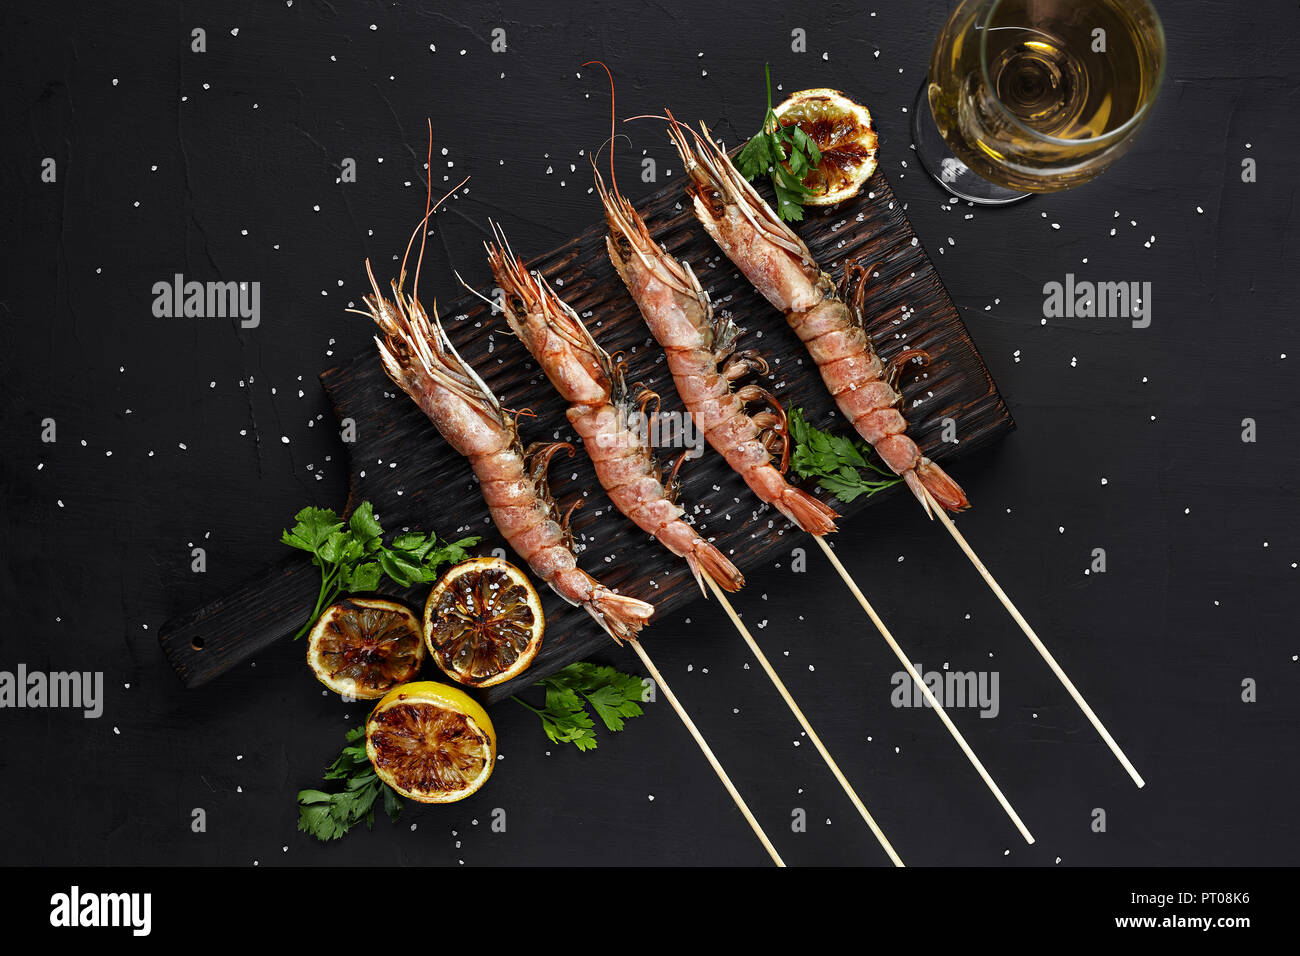 Grilled shrimp skewers. Seafood, shellfish. Shrimps Prawns skewers with herbs, garlic and lemon on black stone background, copy space. Barbecue shrimp Stock Photo